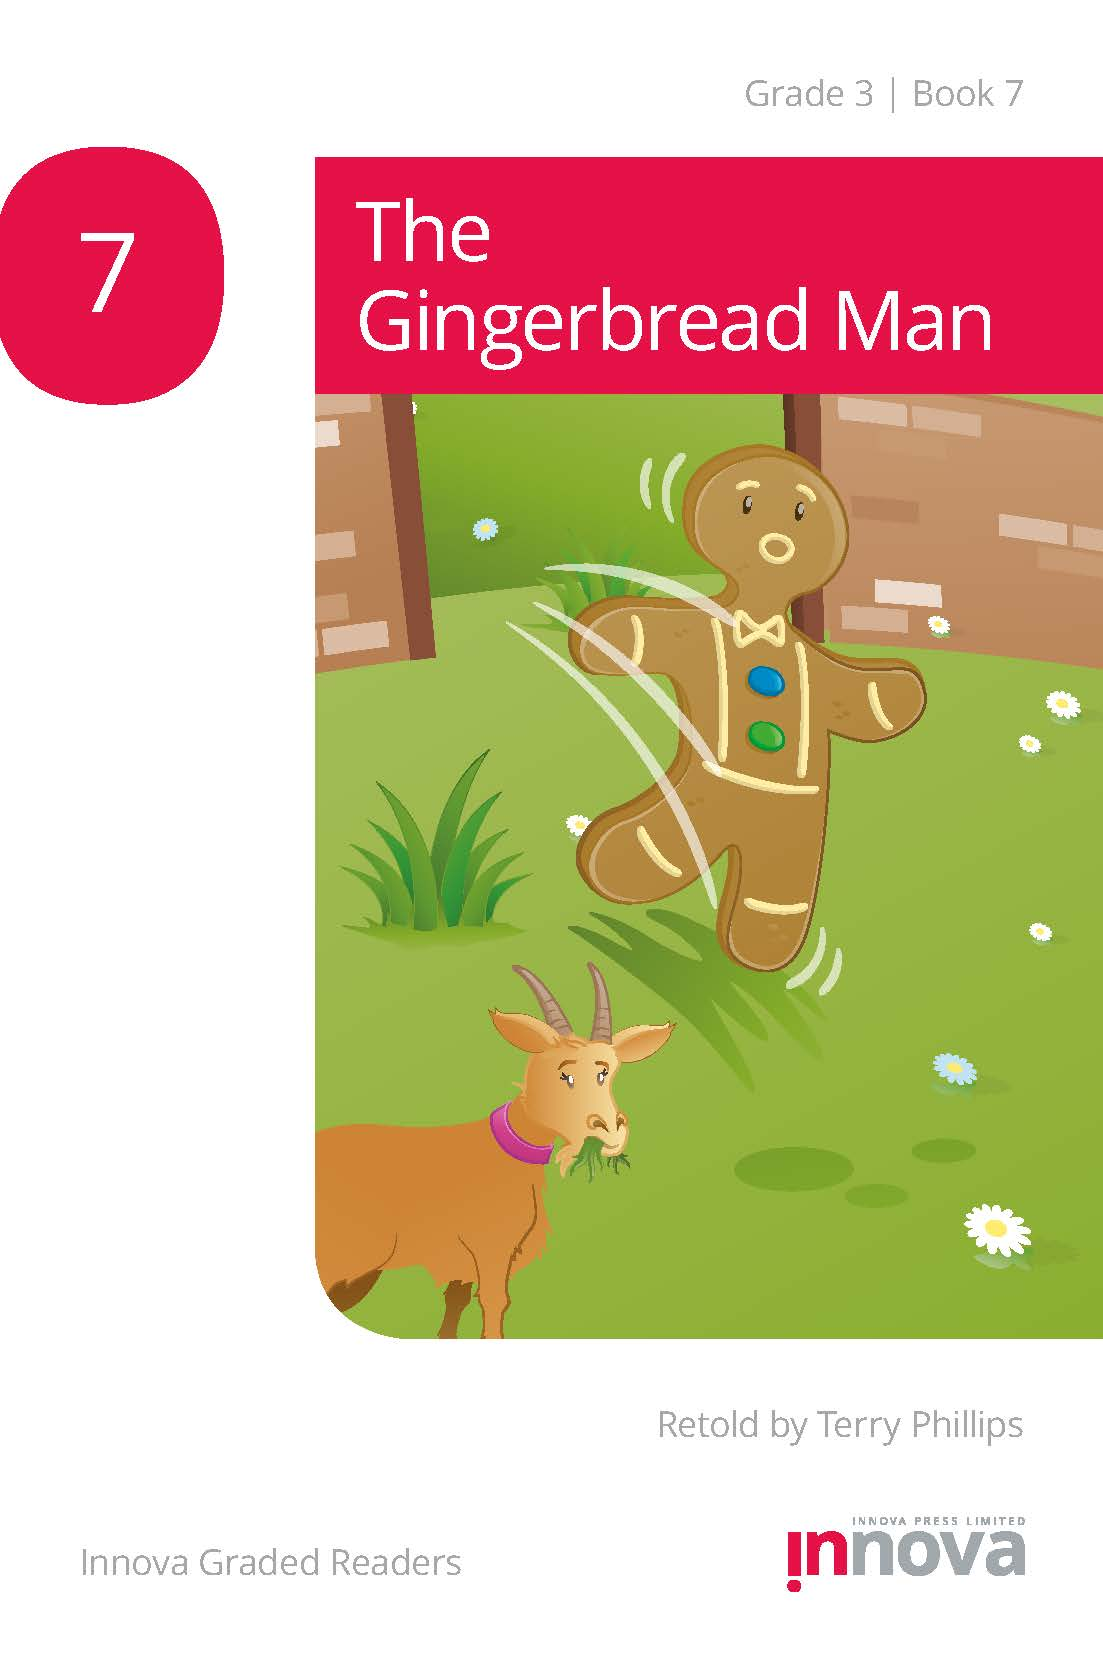 Innova Press The Gingerbread Man cover, gingerbread man runs out of doorway and past a goat